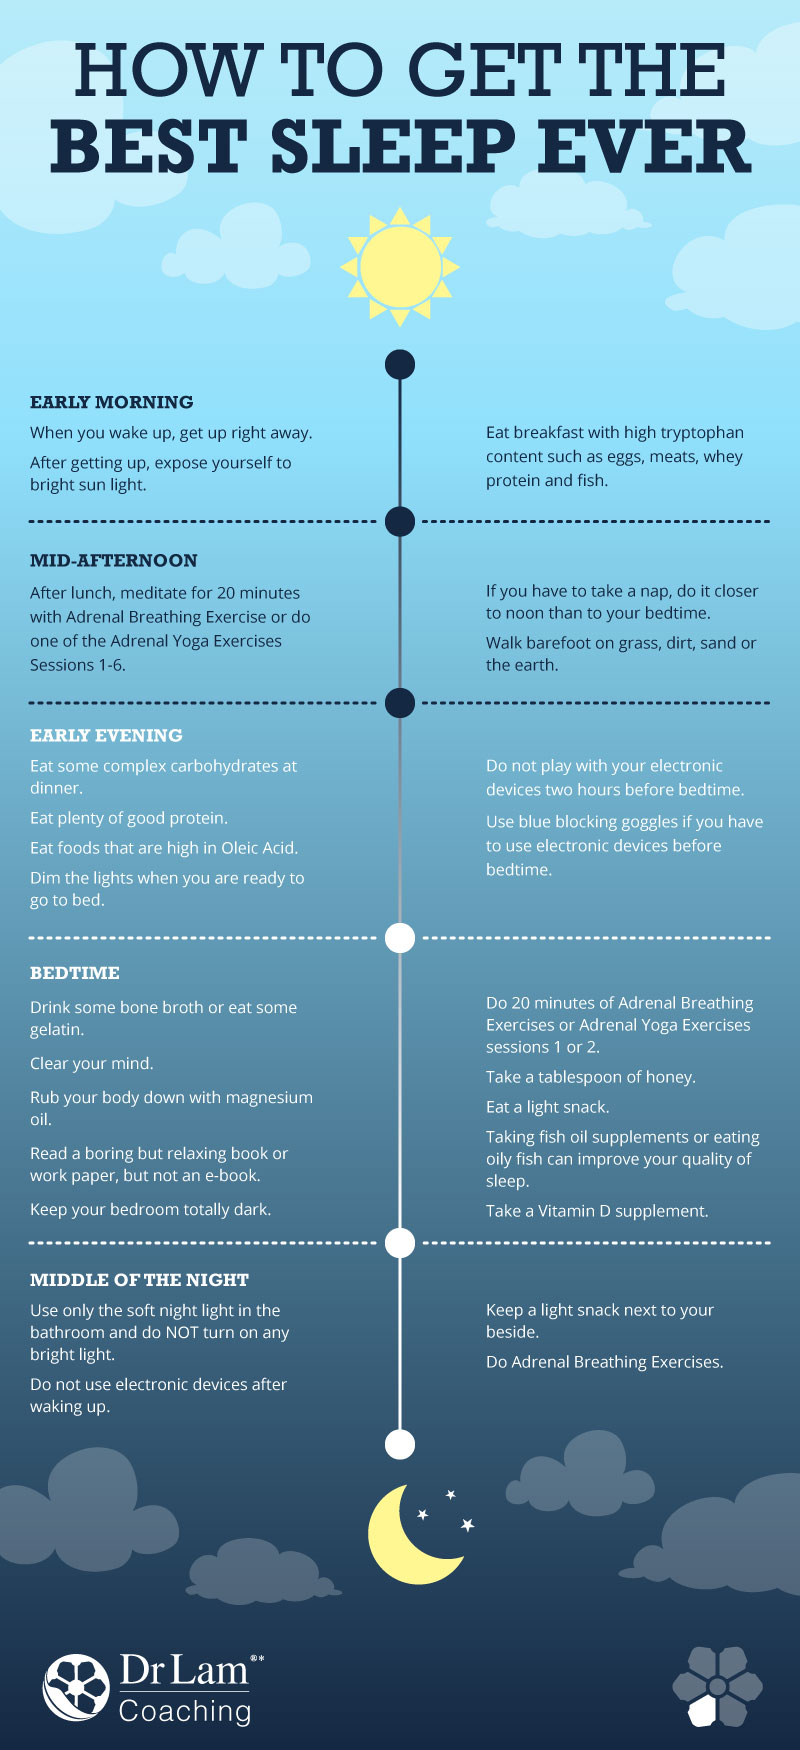 Check out this easy to understand infographic on how to get the best sleep